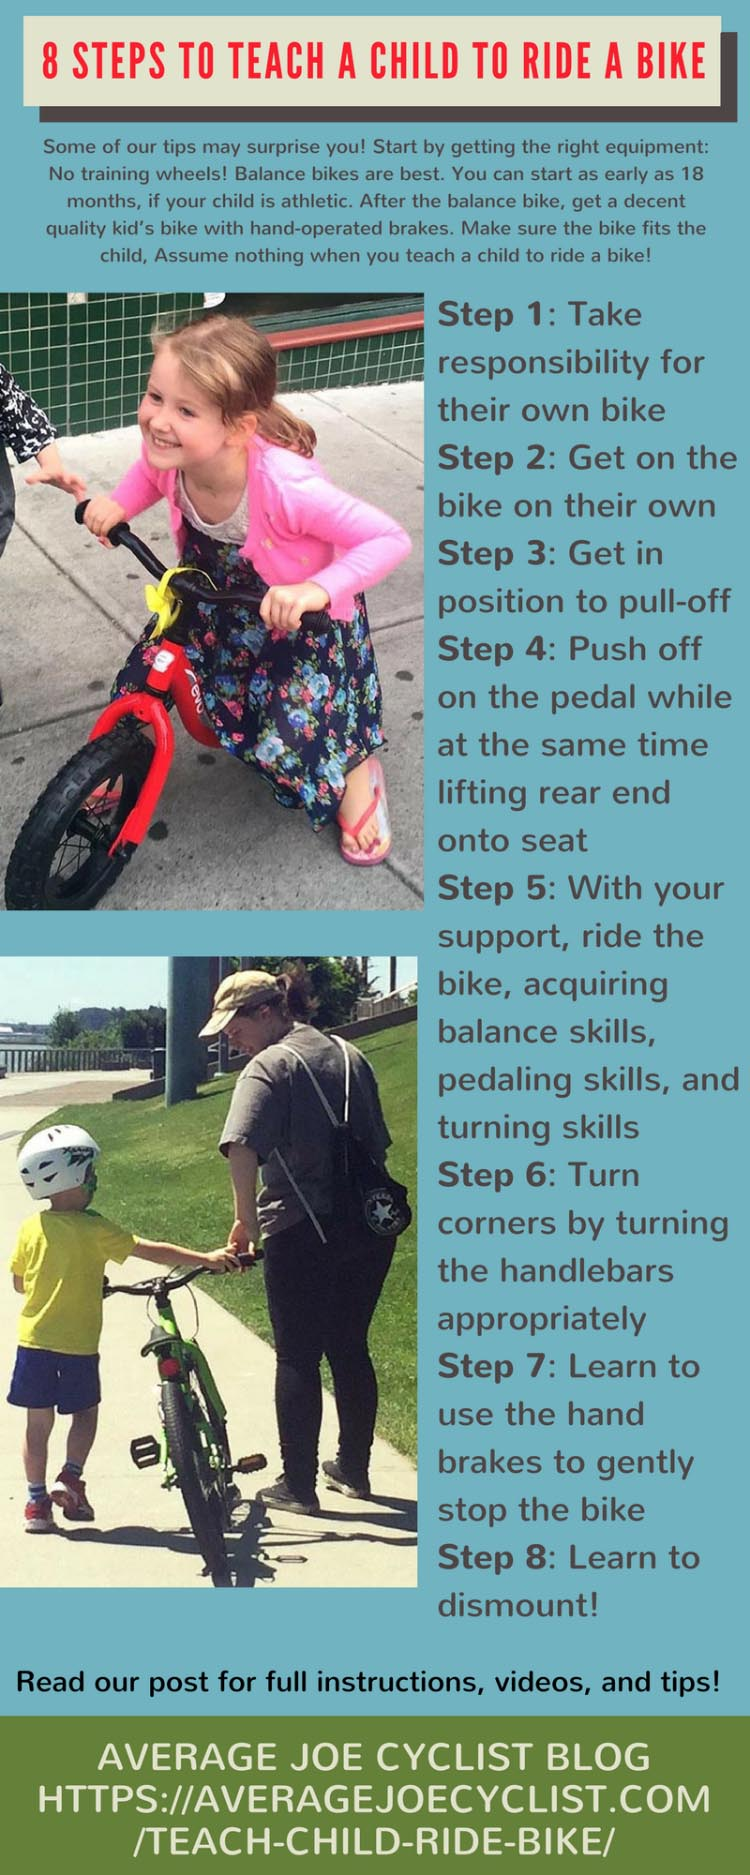 How to teach a child to ride a bicycle: advice to parents